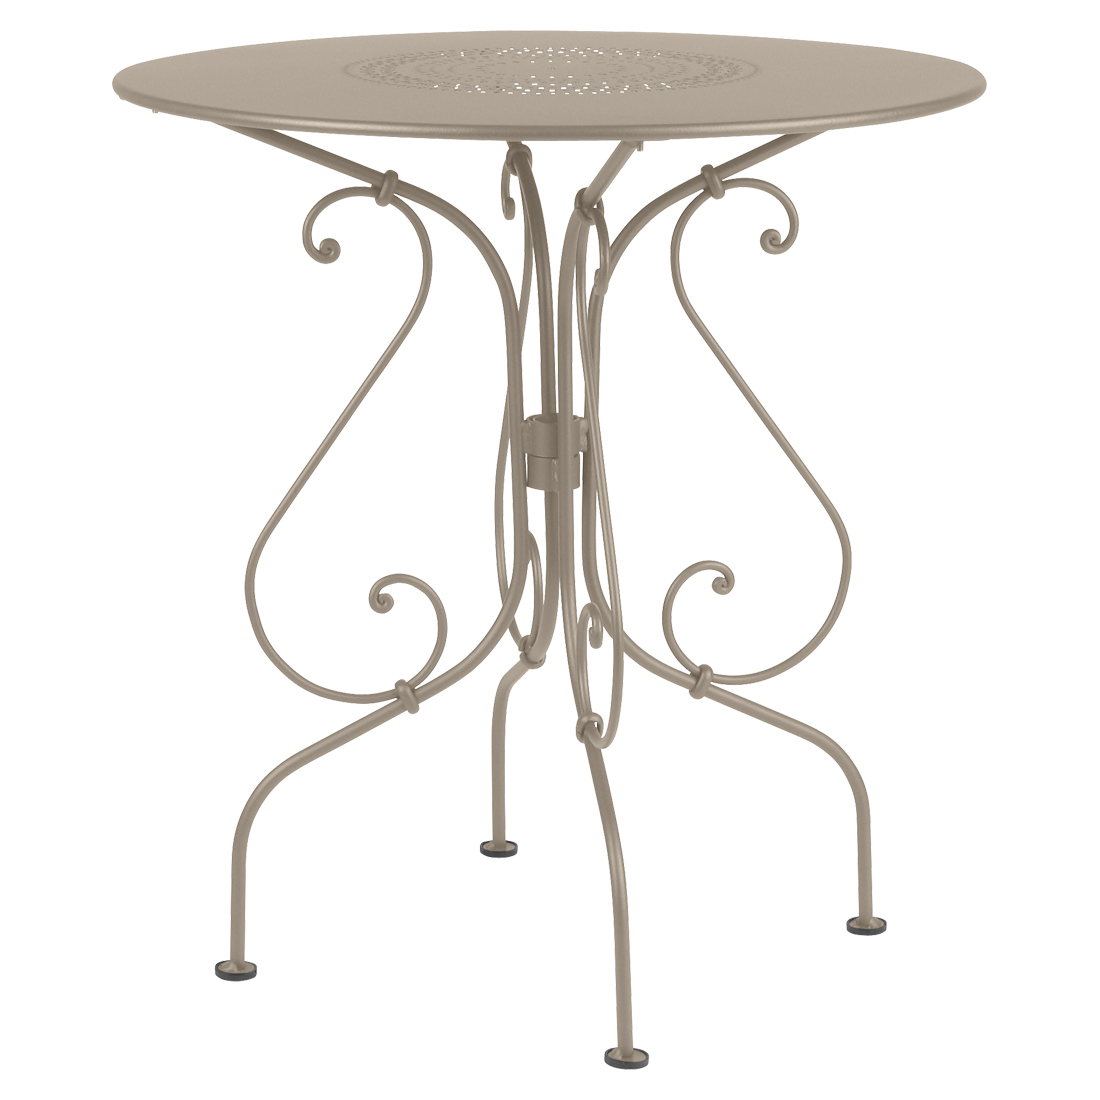 1900 Pedestal Table, Round Metal Table, Garden Table For 2